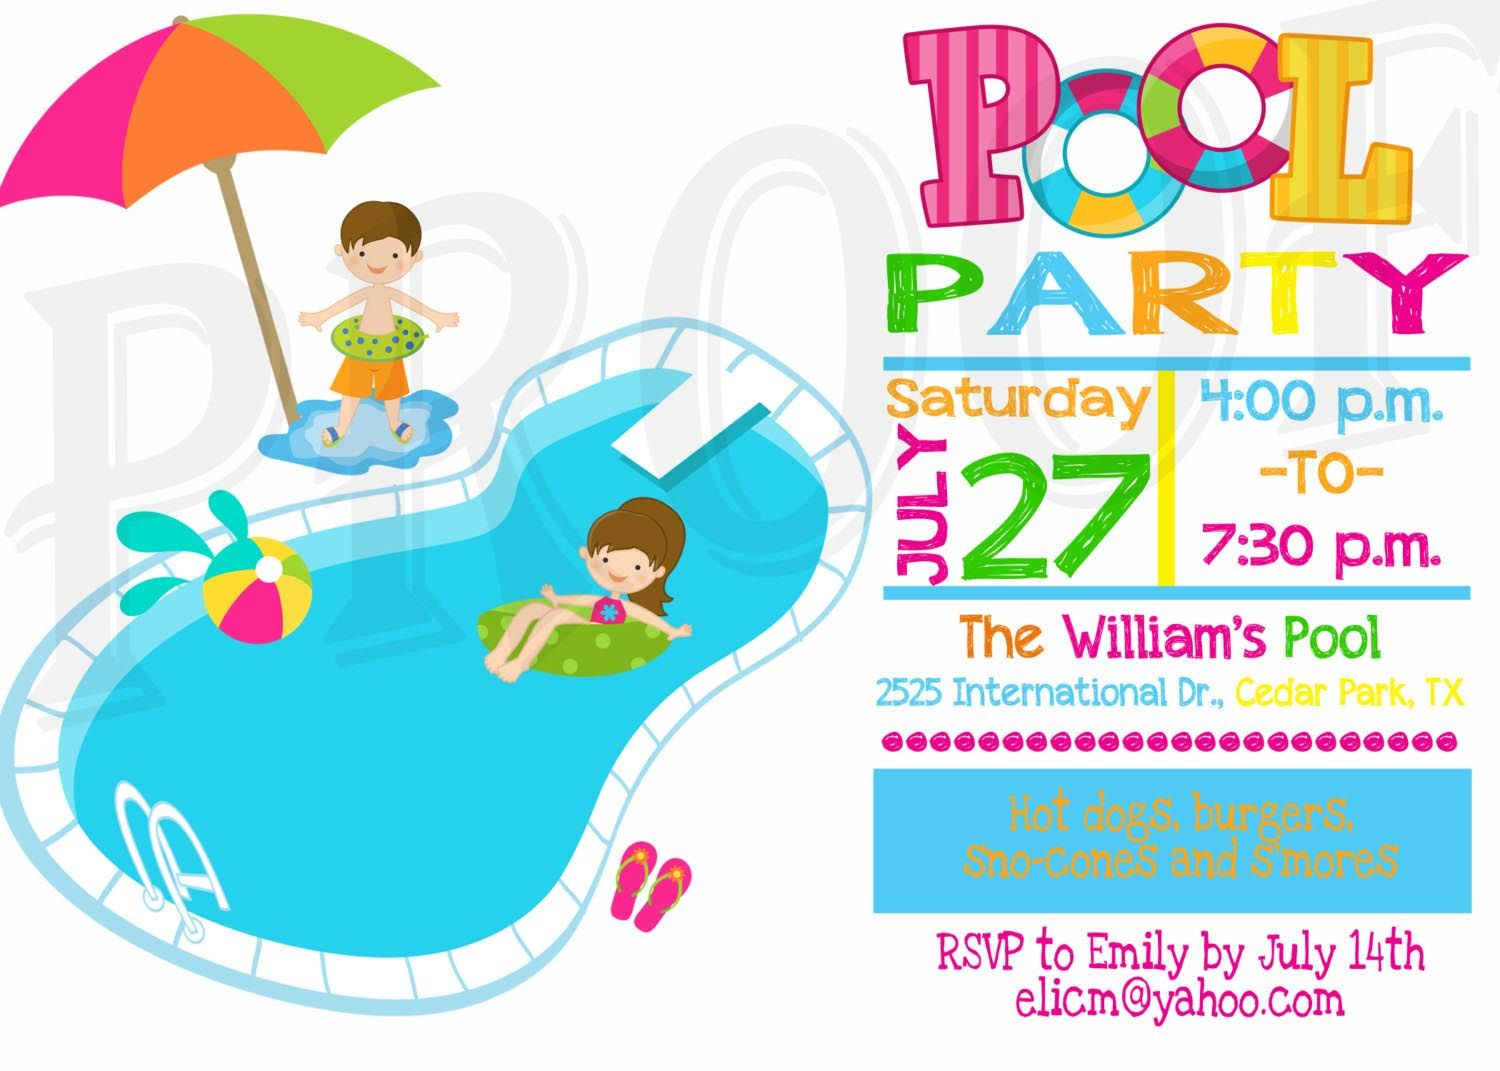 Kids Pool Party Invitation | Pool Party | Pinterest | Kid pool ...